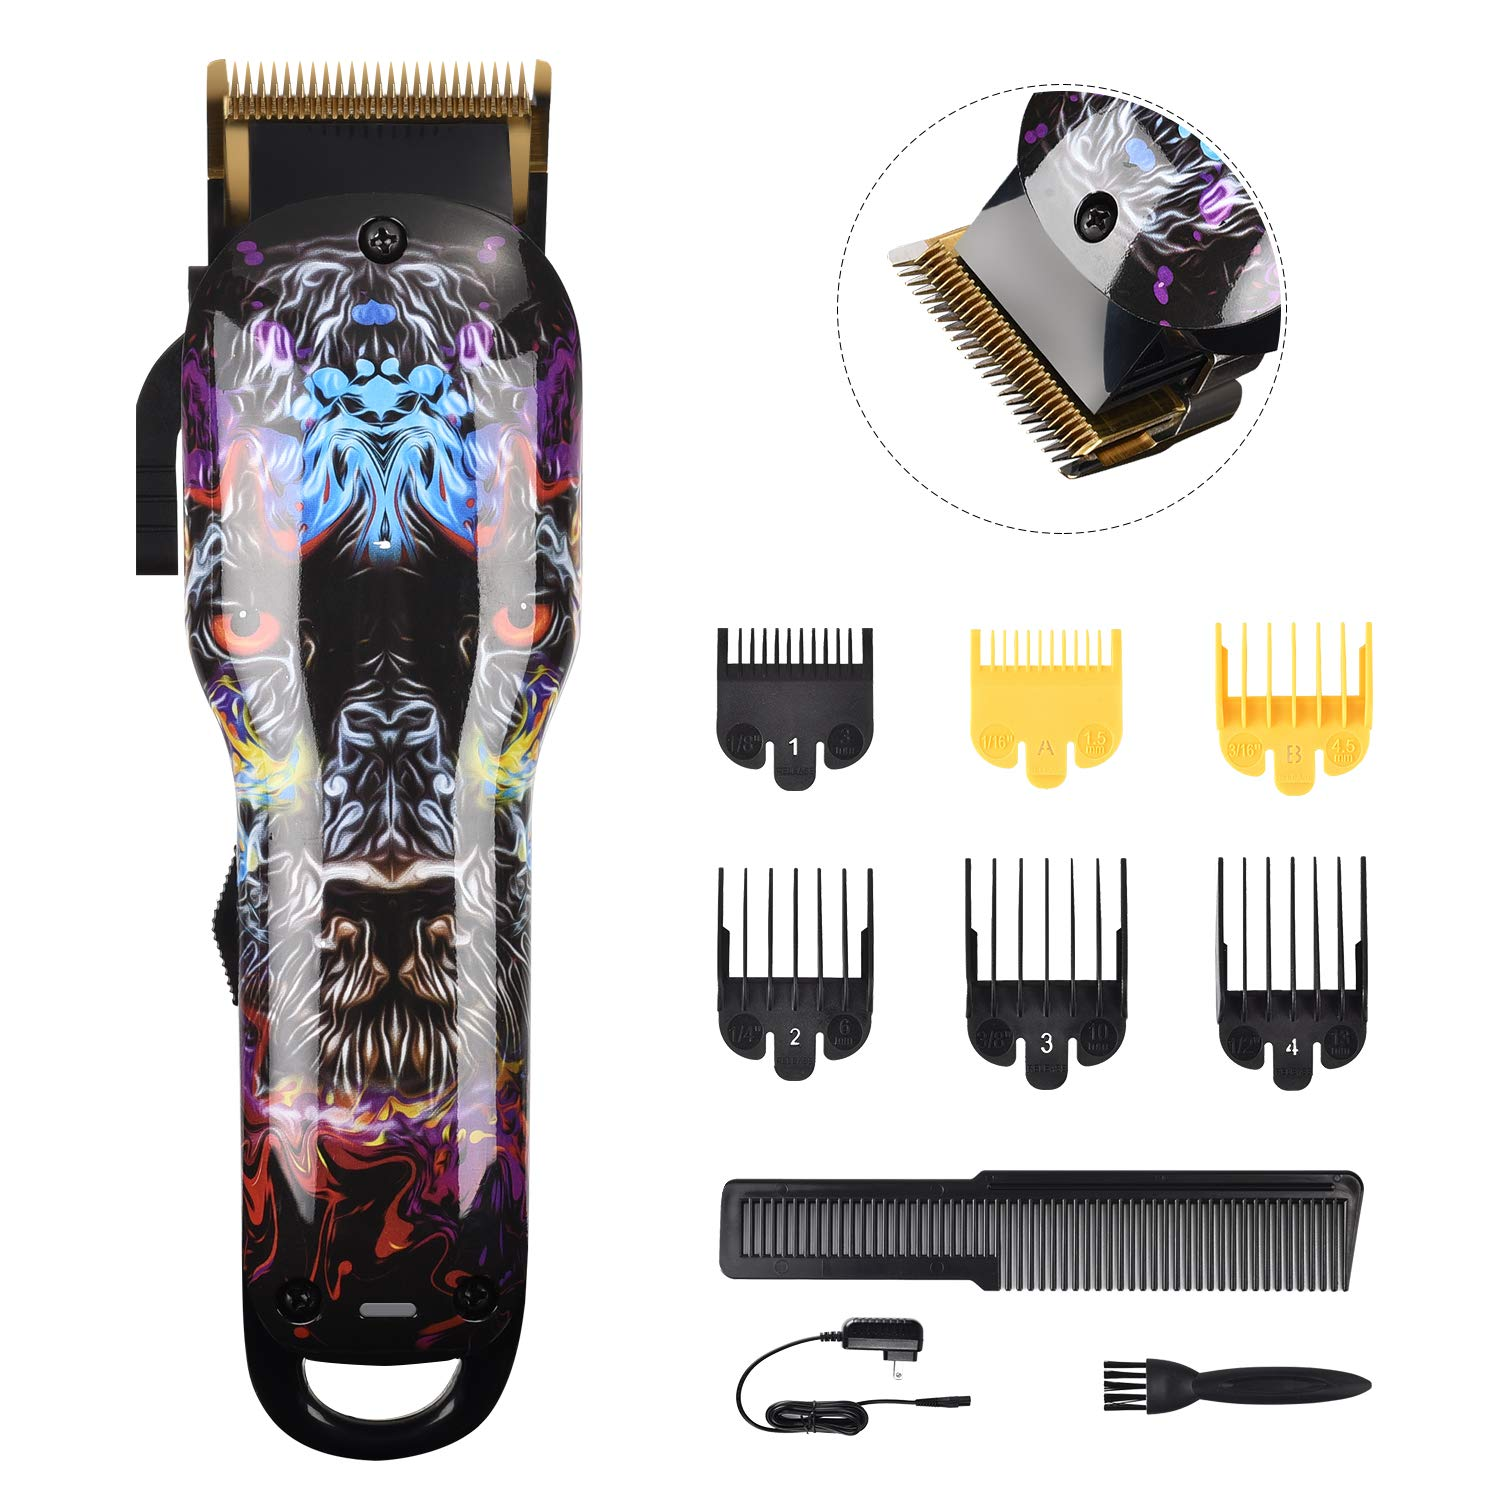 Great professional hair trimmers